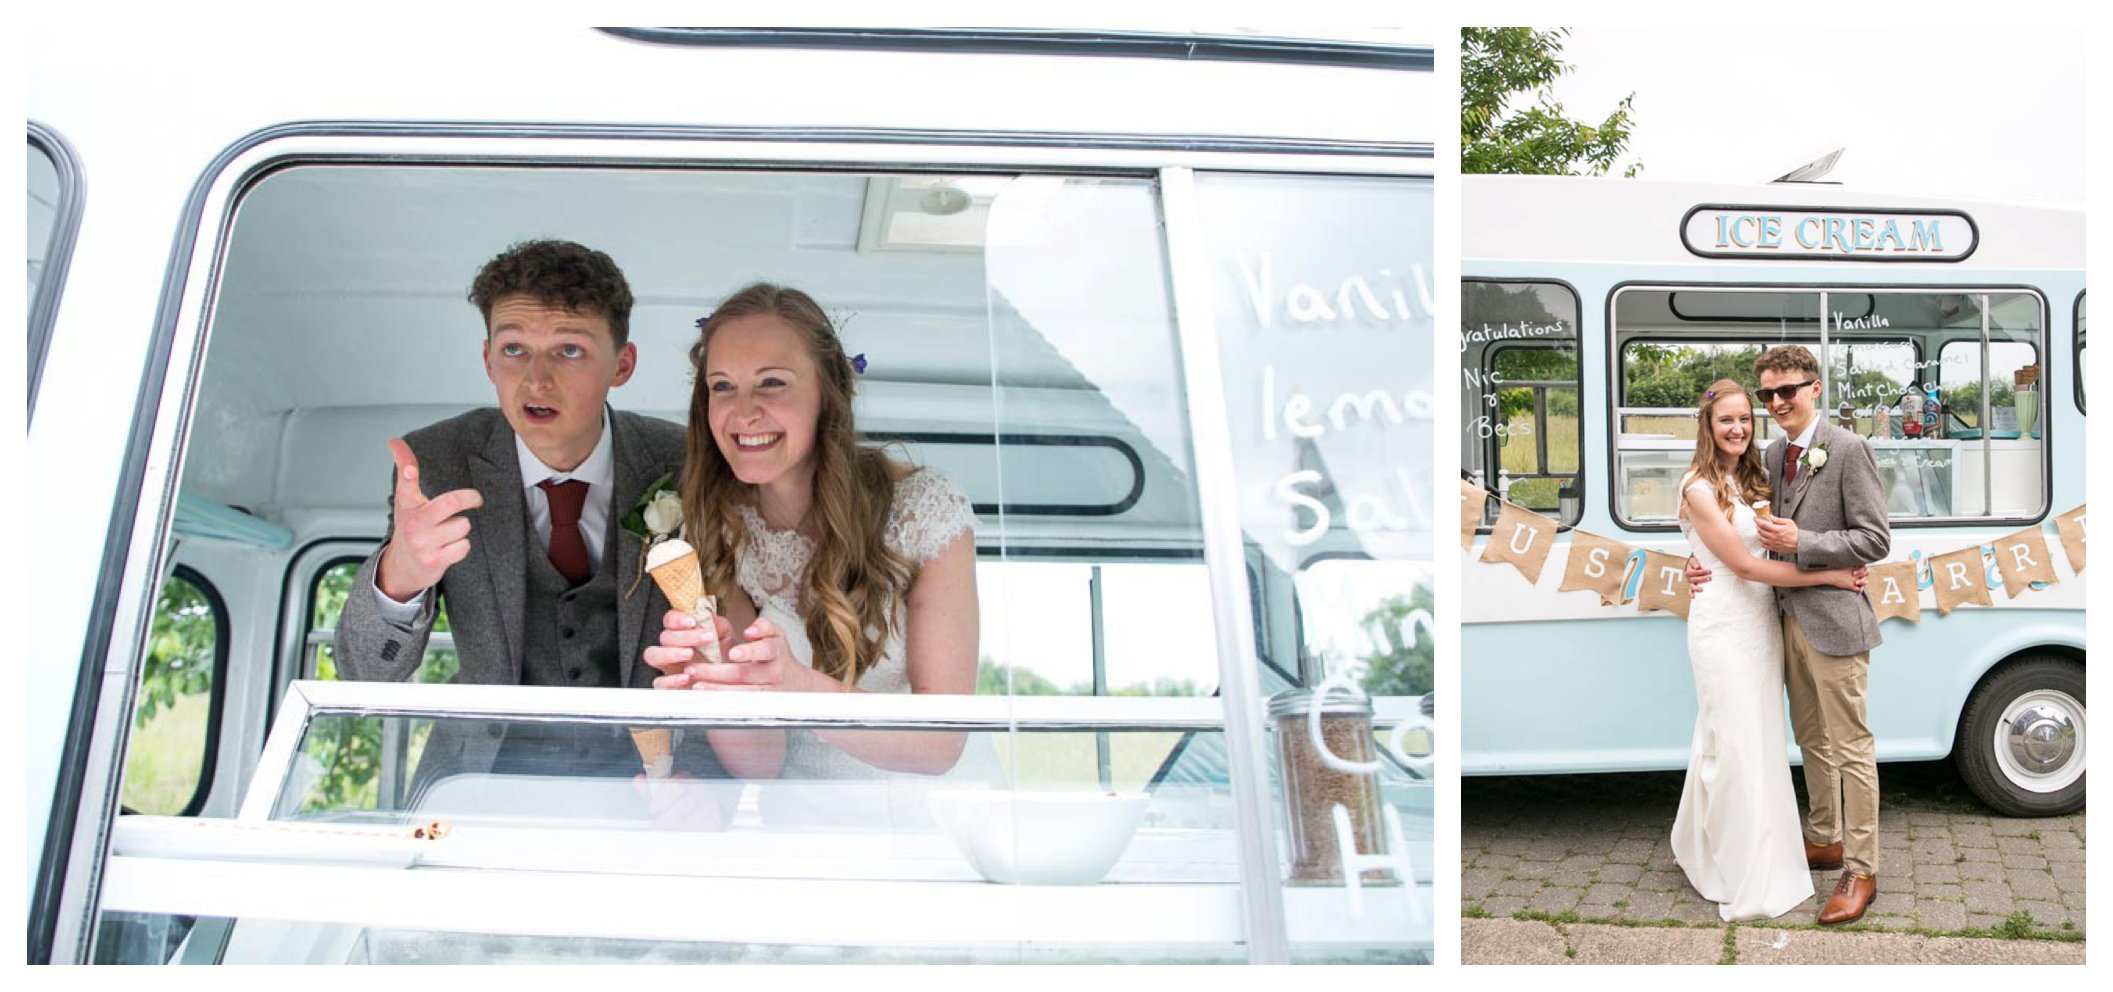 bride and groom serving icecream from vintace icecream van outside church at their wedding